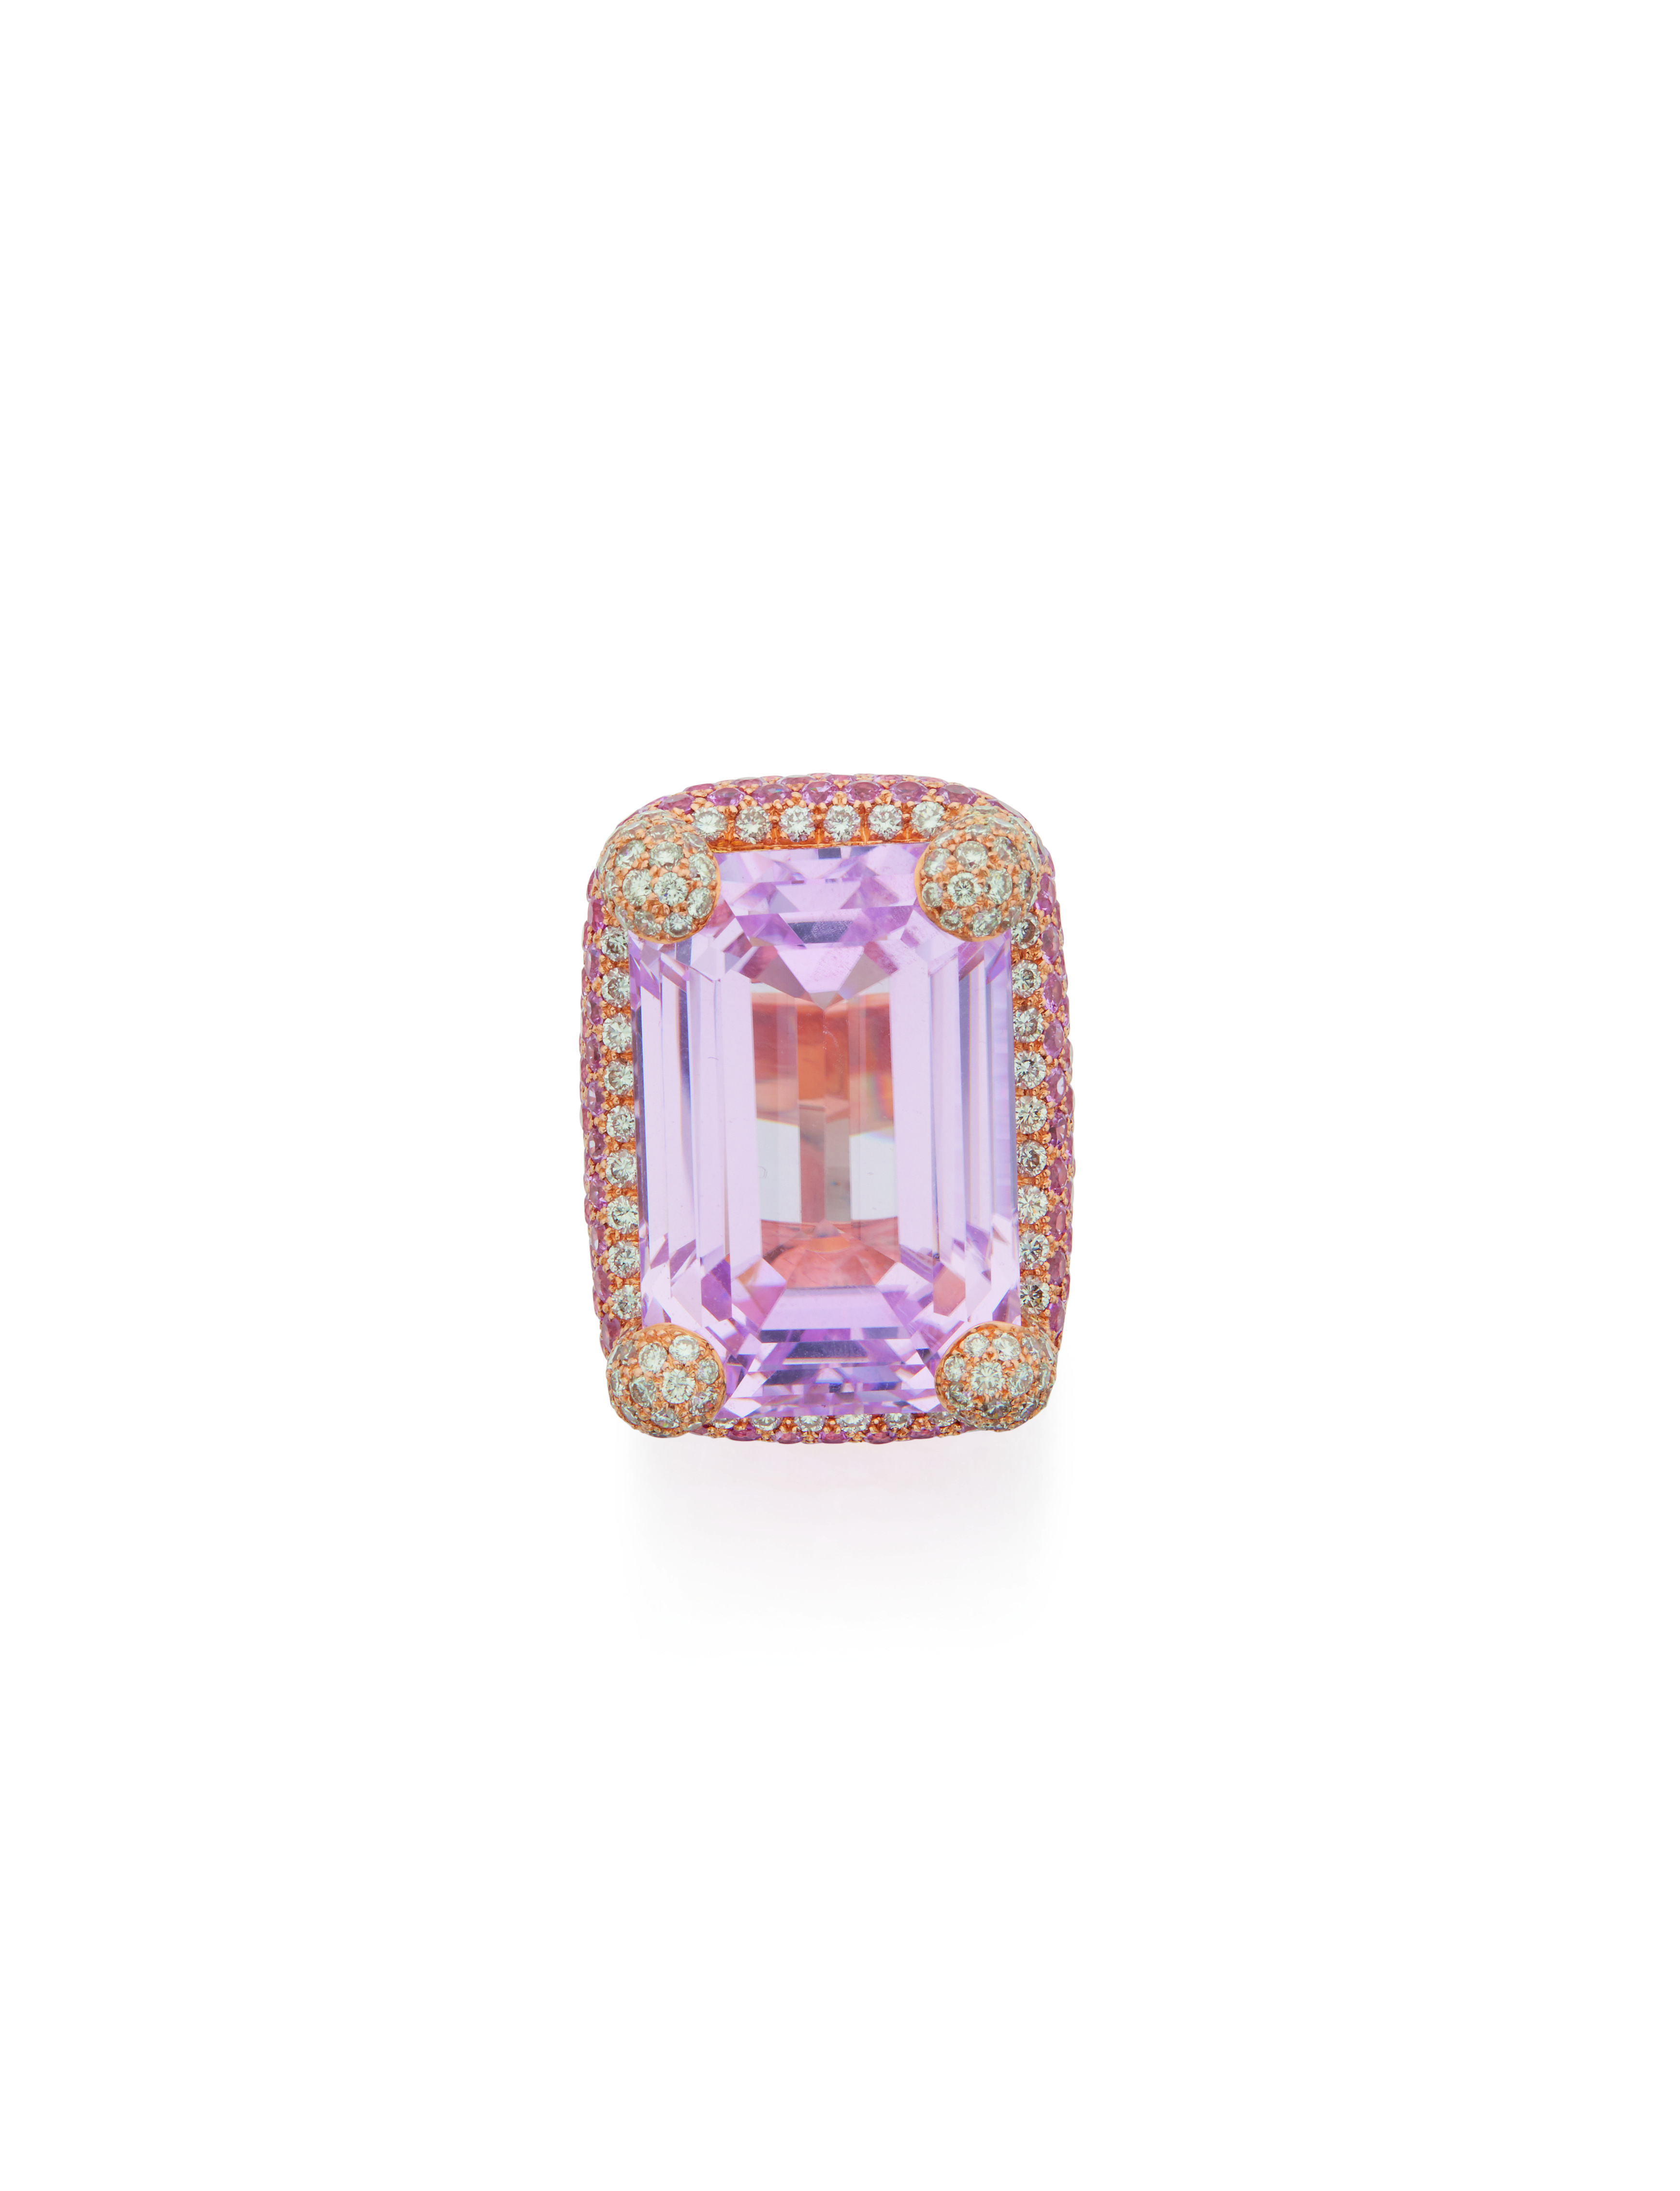 View full screen - View 1 of Lot 25. KUNZITE, PINK SAPPHIRE AND DIAMOND RING, MICHELE DELLA VALLE.